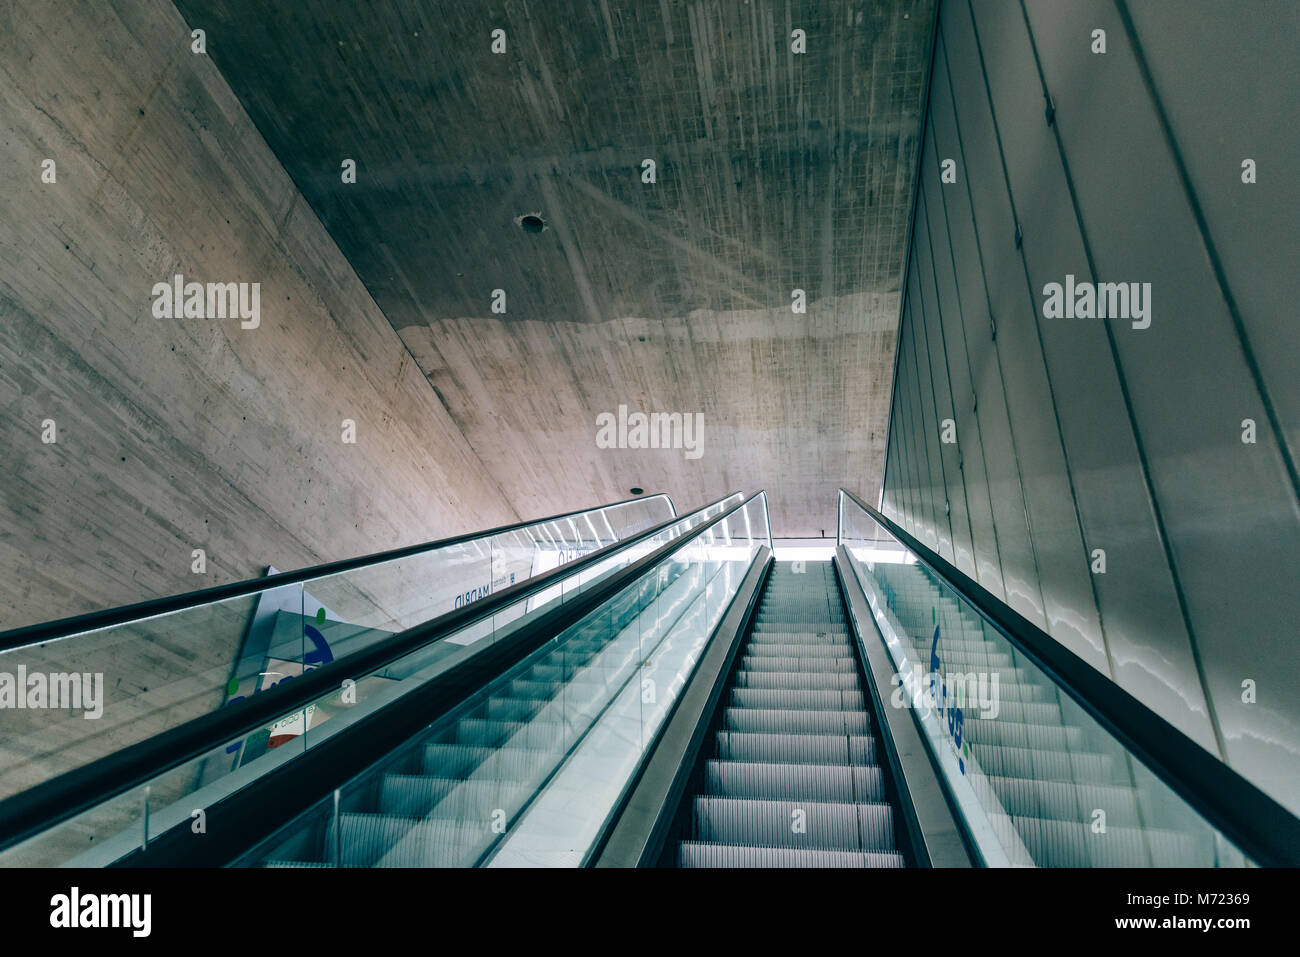 Madrid, Spain - November 3, 2017: Main staircase of Mercado Barcelo in Madrid. It is a modern architecture building Stock Photo